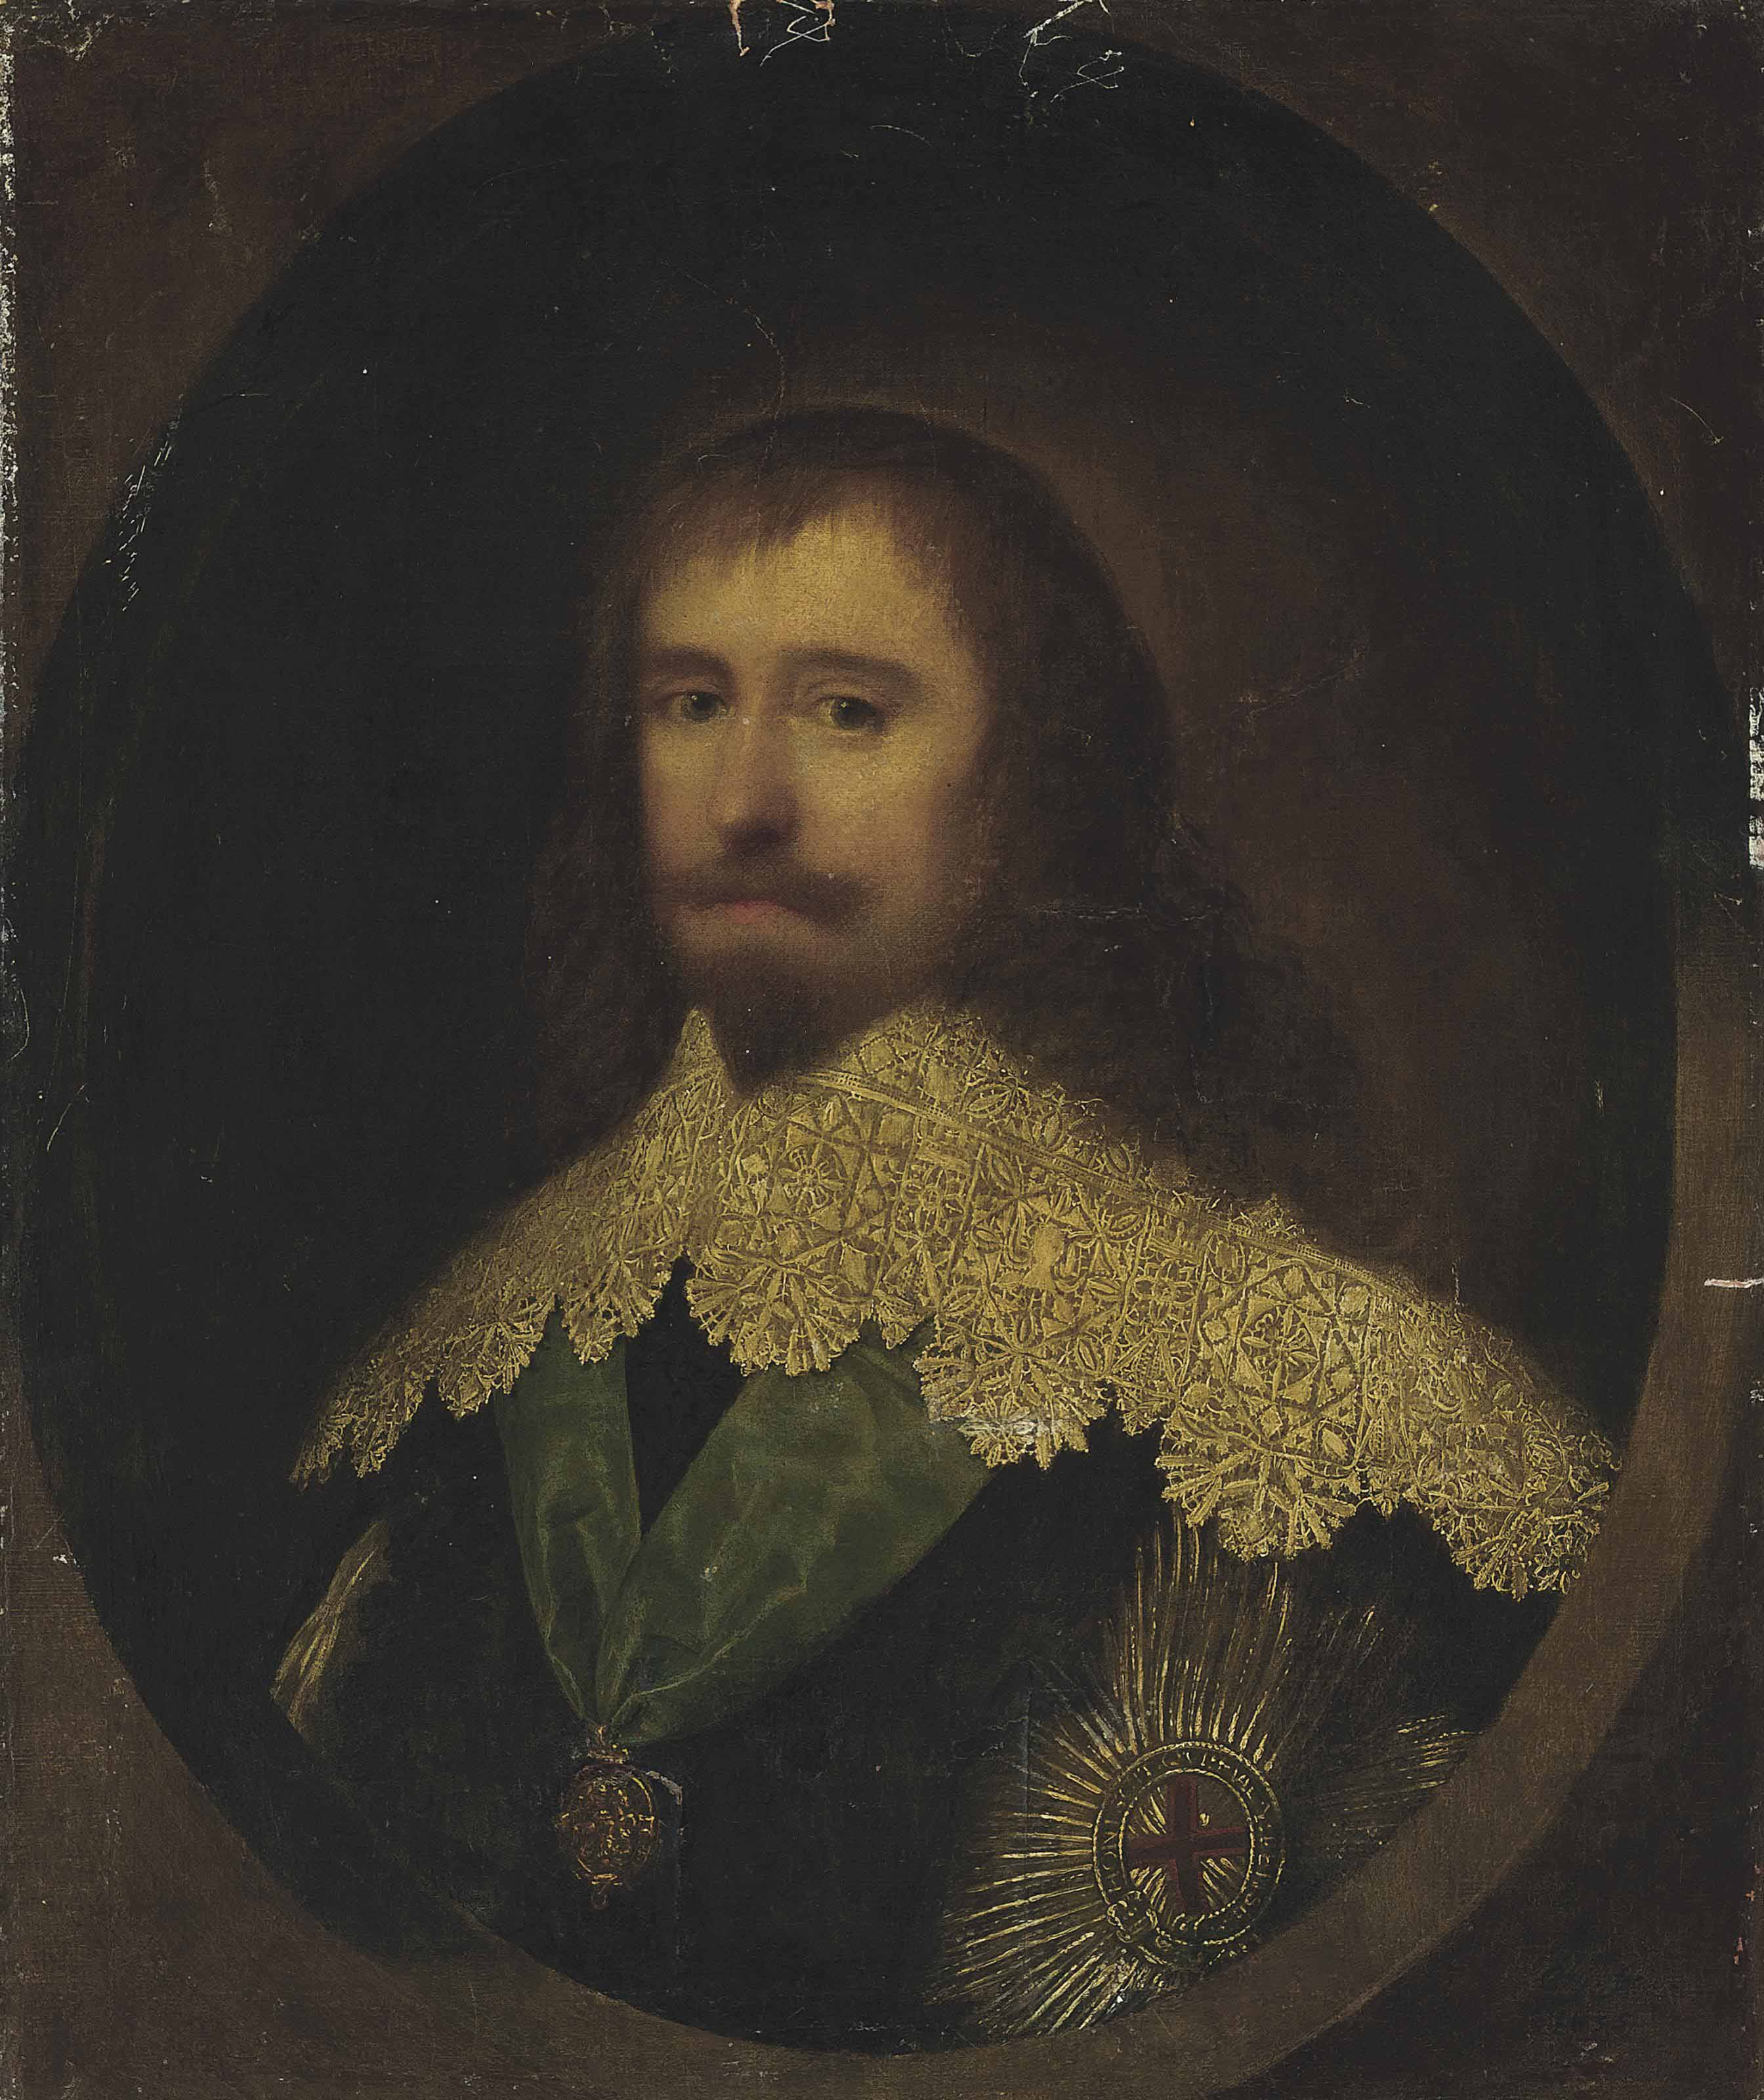 Portrait of a gentleman, possibly Philip Herbert, 1st Earl of Montgomery and 4th Earl of Pembroke (1584-1650), bust-length, with a lace collar and wearing the badge and star of the Order of the Garter, in a feigned oval